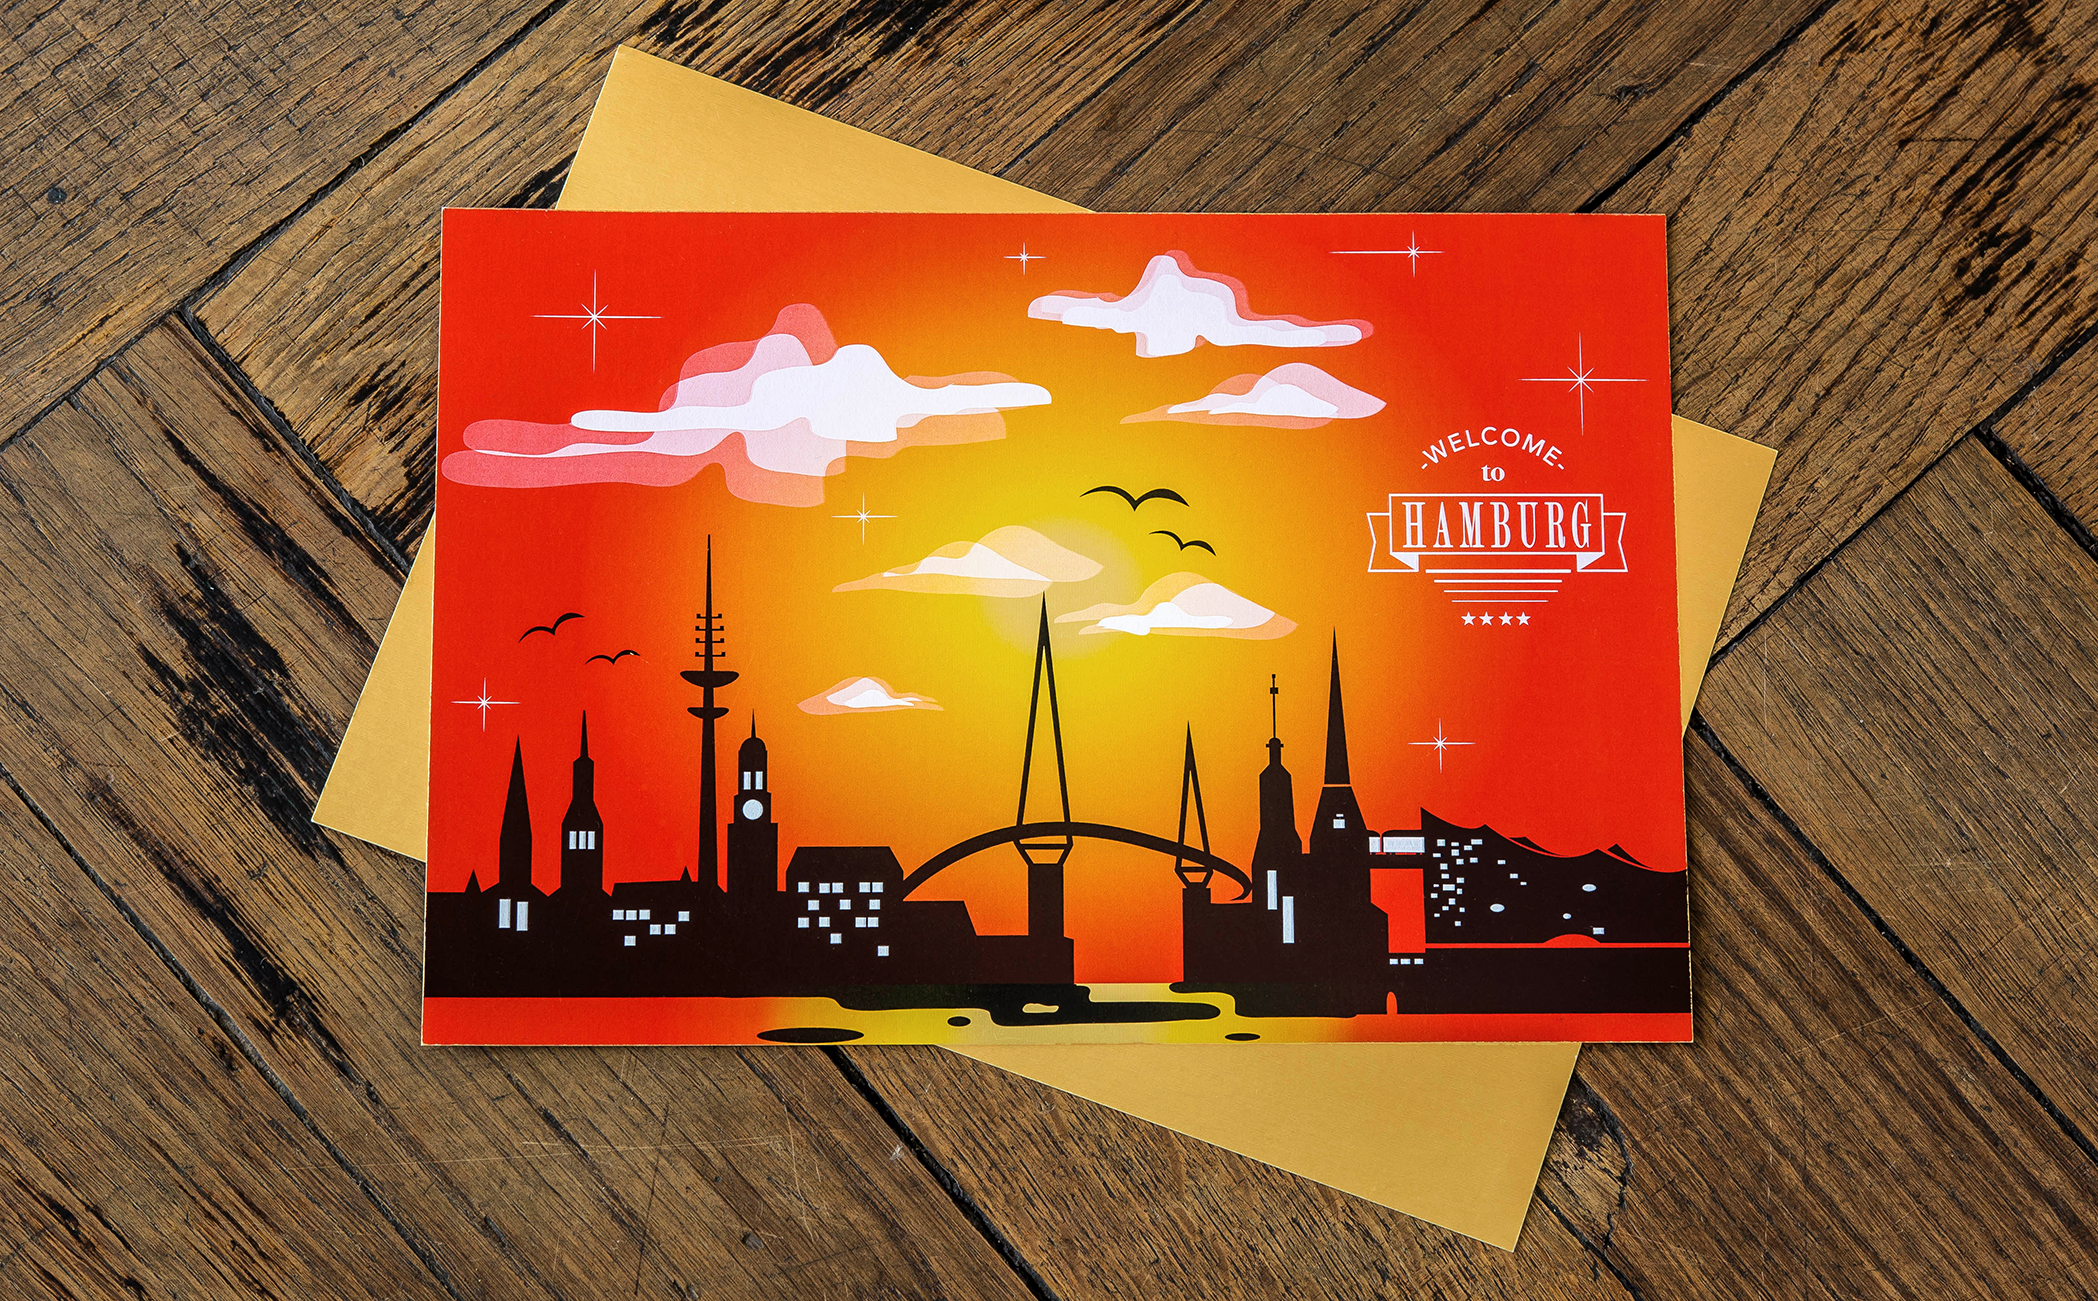 Moin Hamburg - one of the most beautiful cities in the world